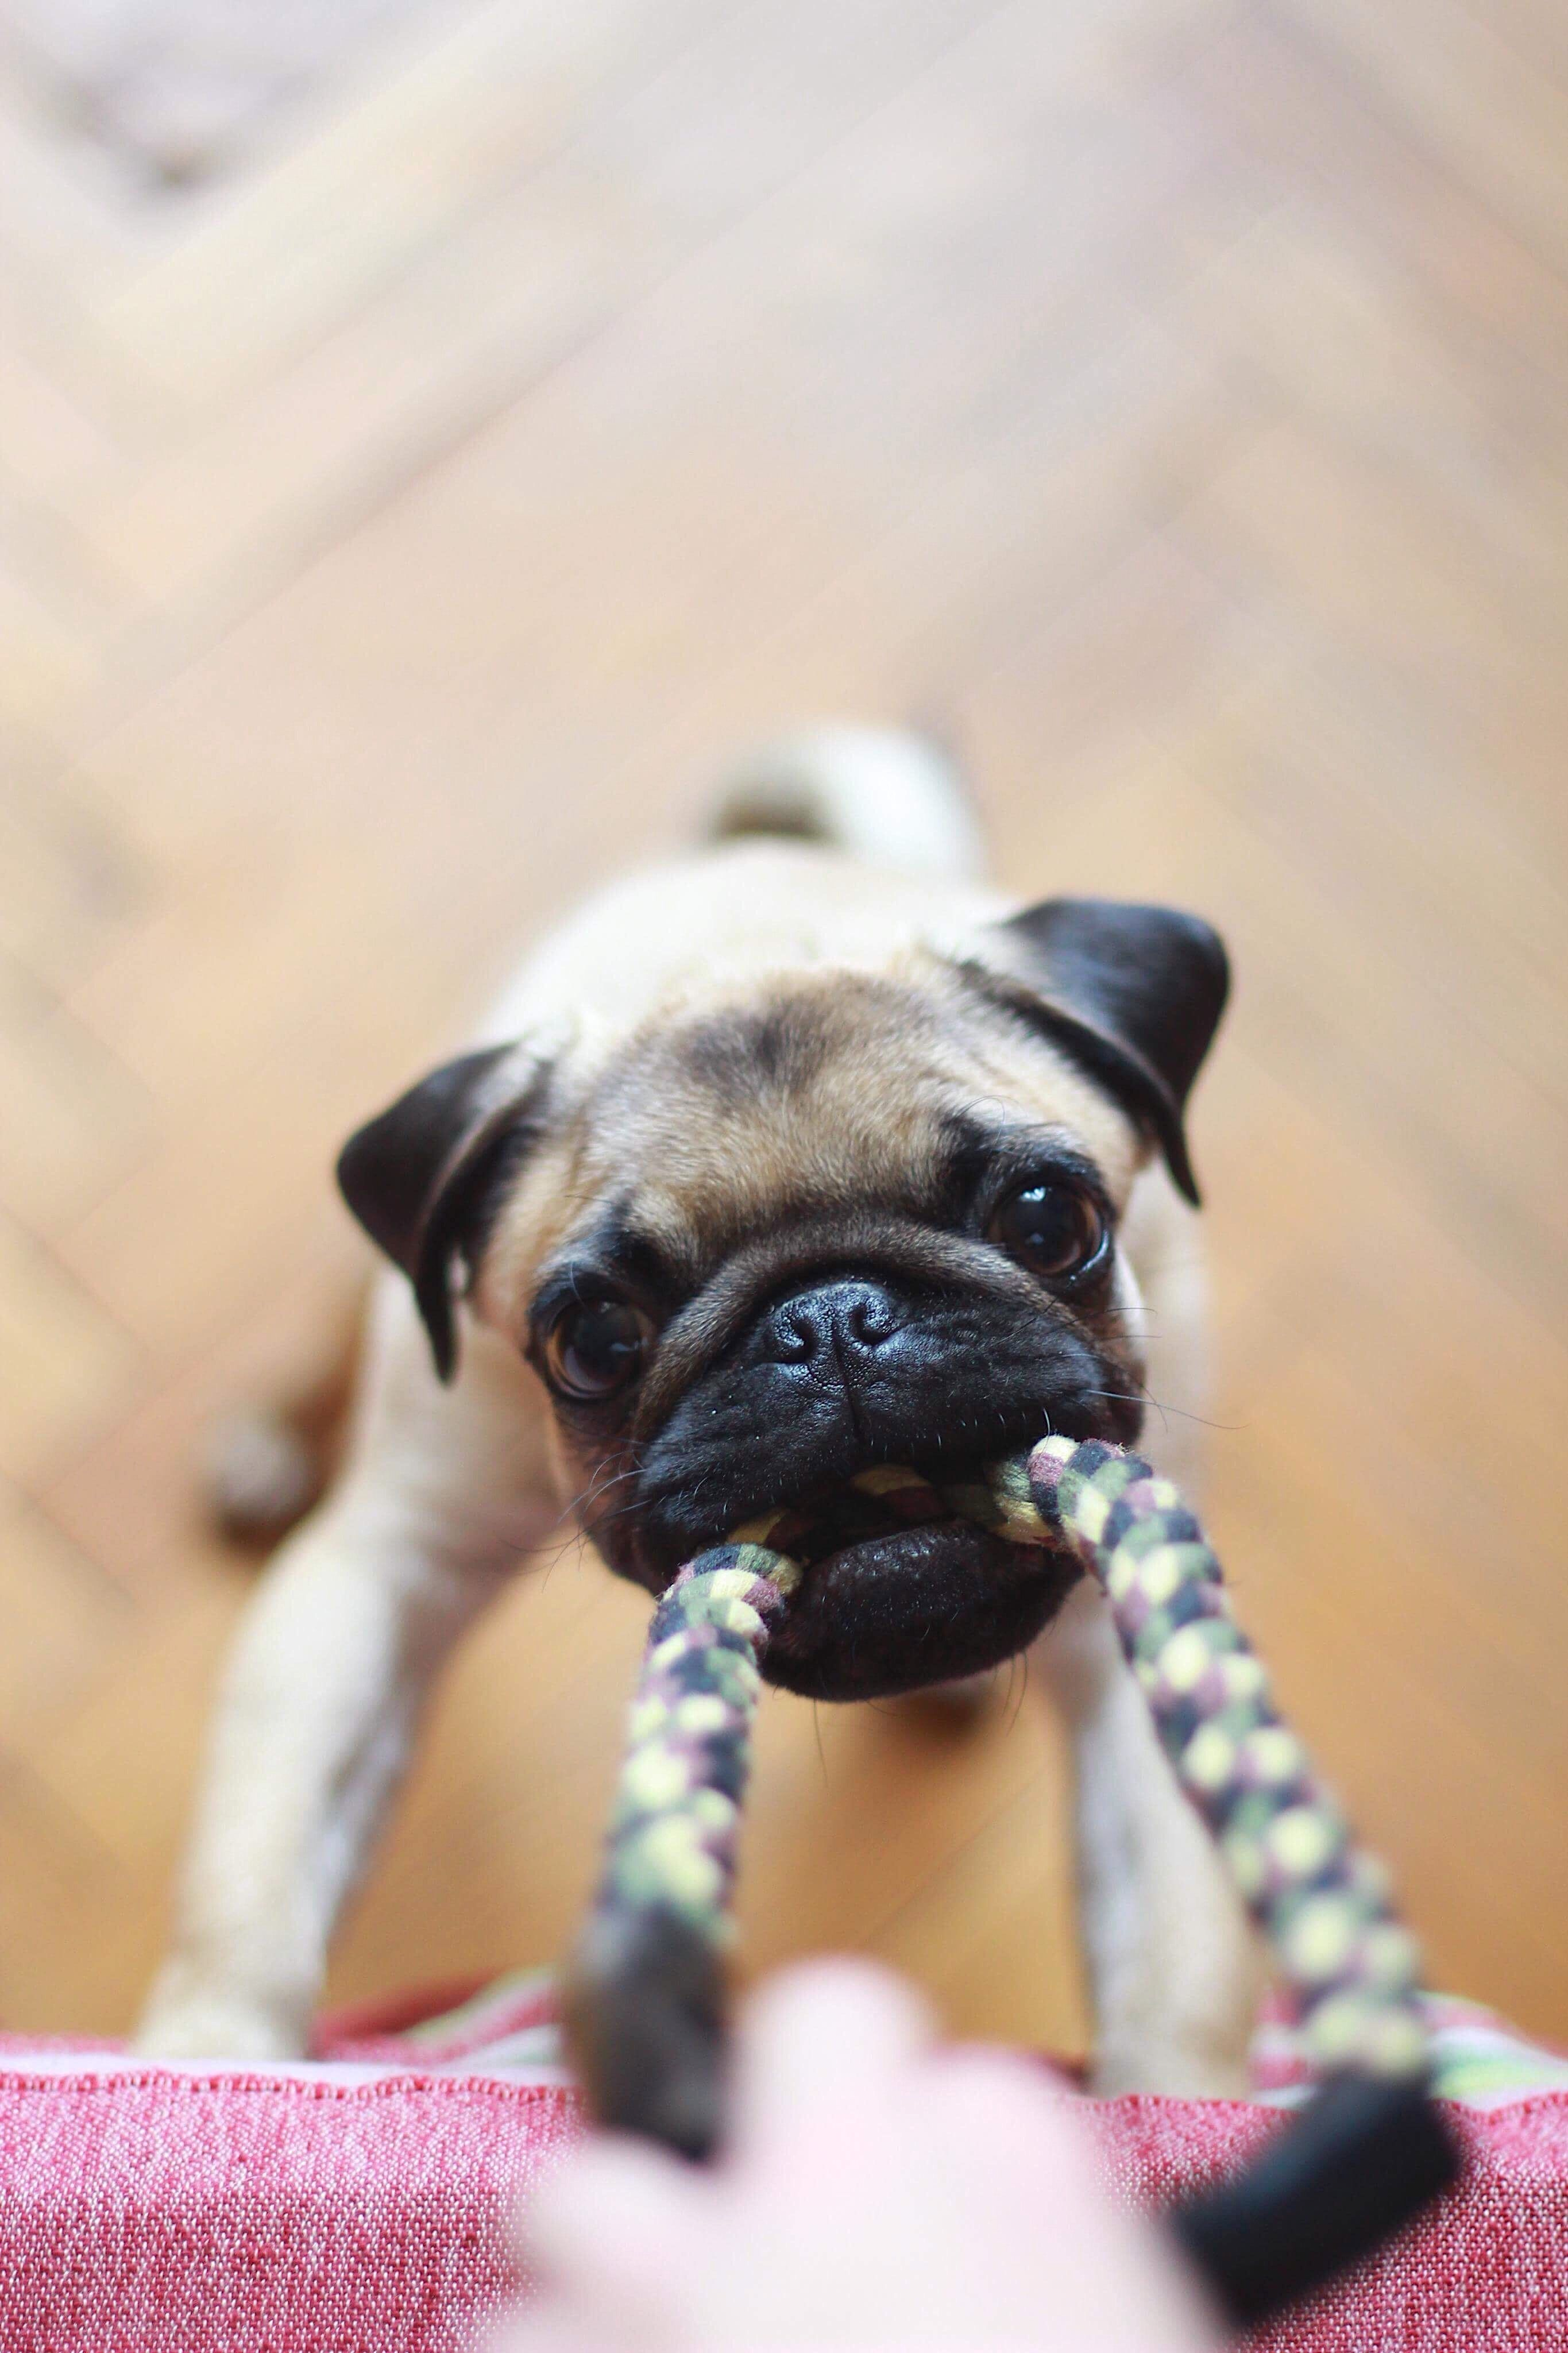 Pug Puppy Love This Cute Puppy Easiest Dogs To Train